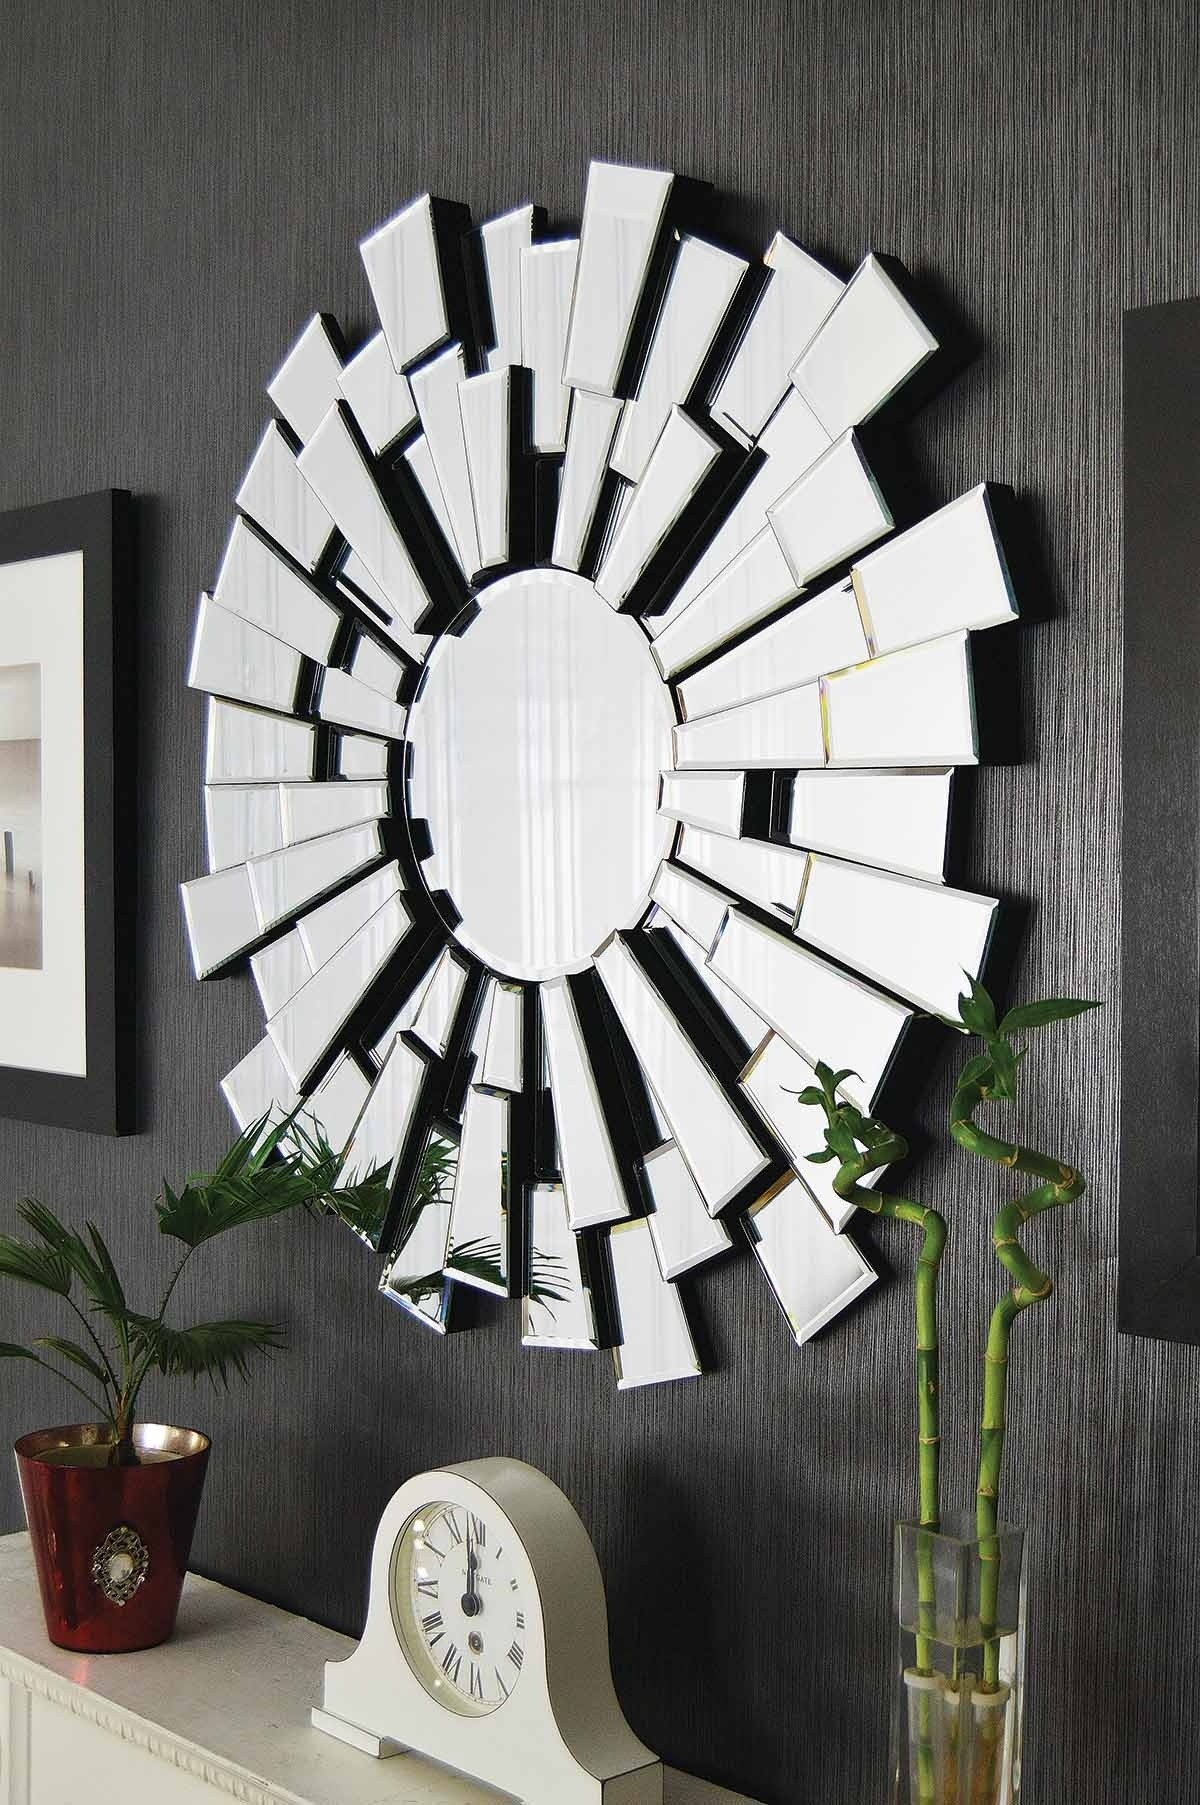 Contemporary Wall Mirrors Decorative Inarace In Contemporary Round Mirrors (Image 4 of 15)